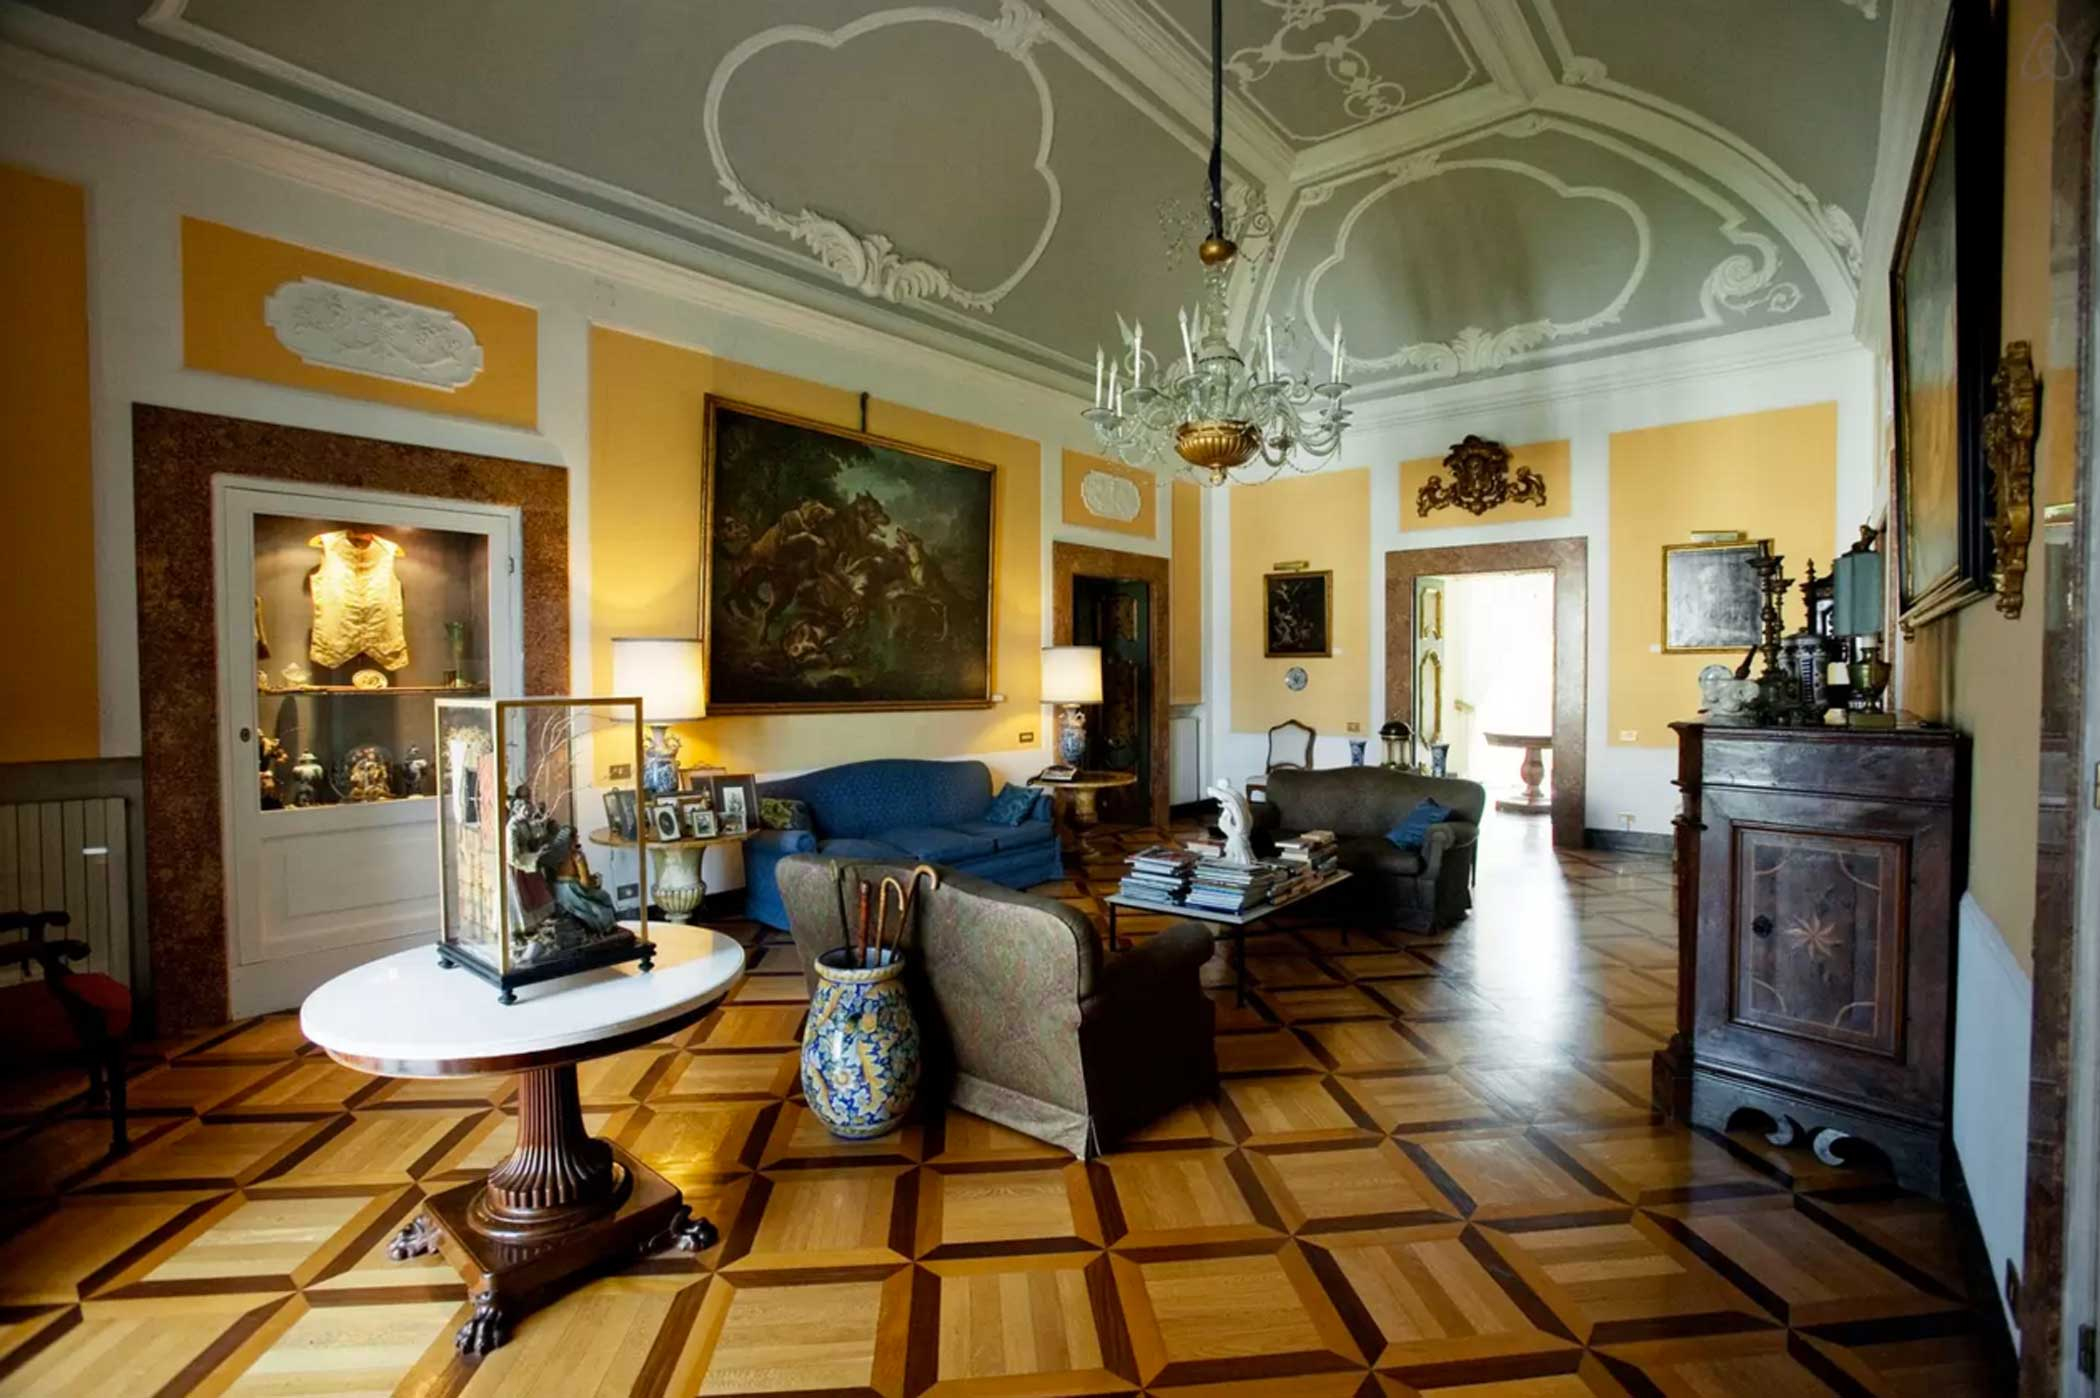 Listing: Villa San Gennariello B&B. $67 per night.